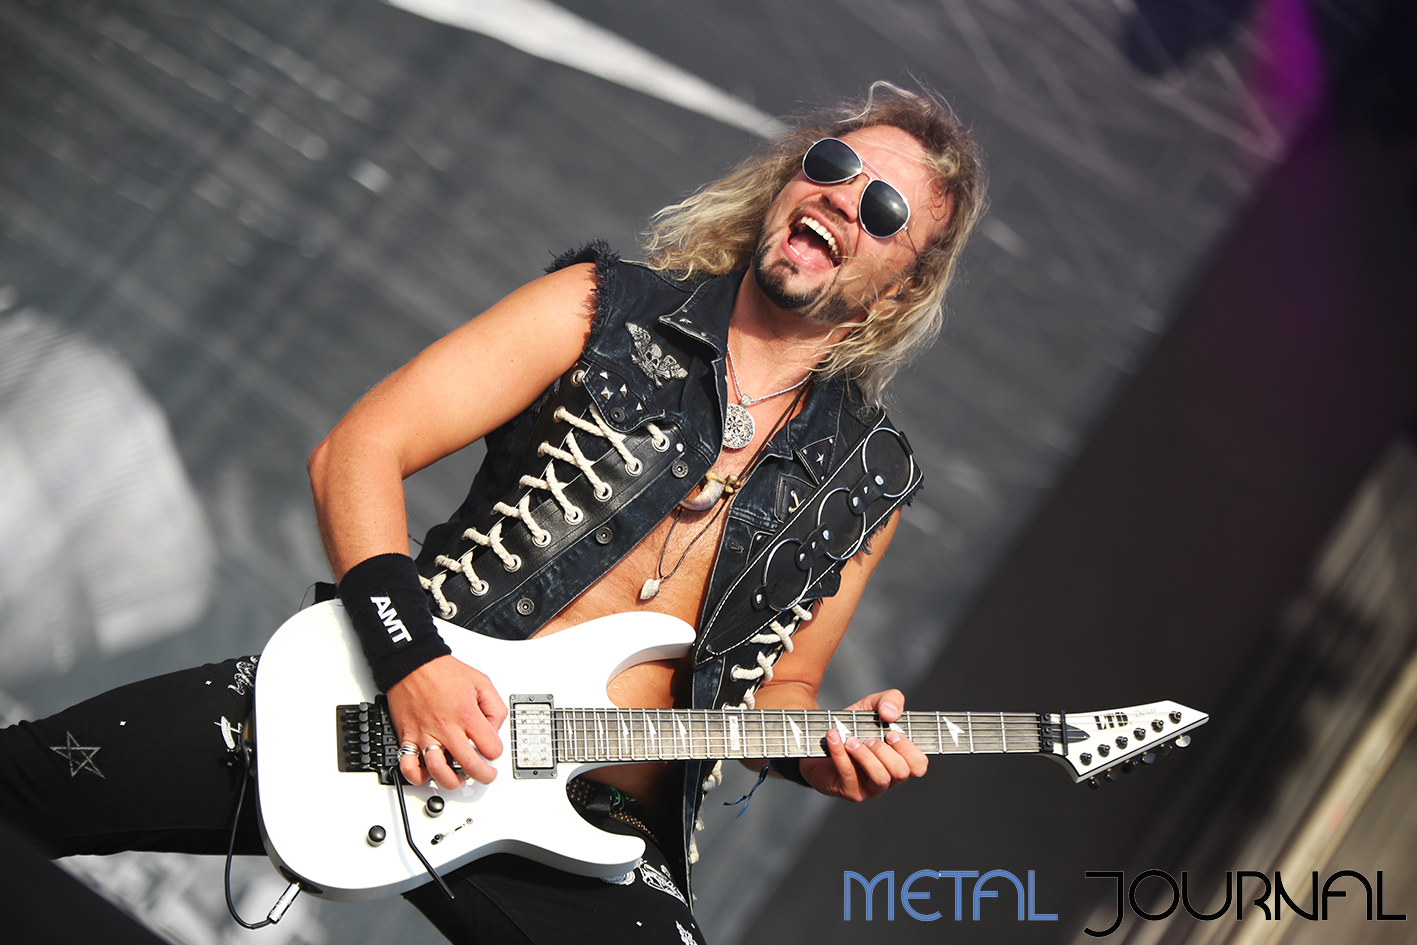 udo - metal journal rock fest barcelona 2019 pic 8